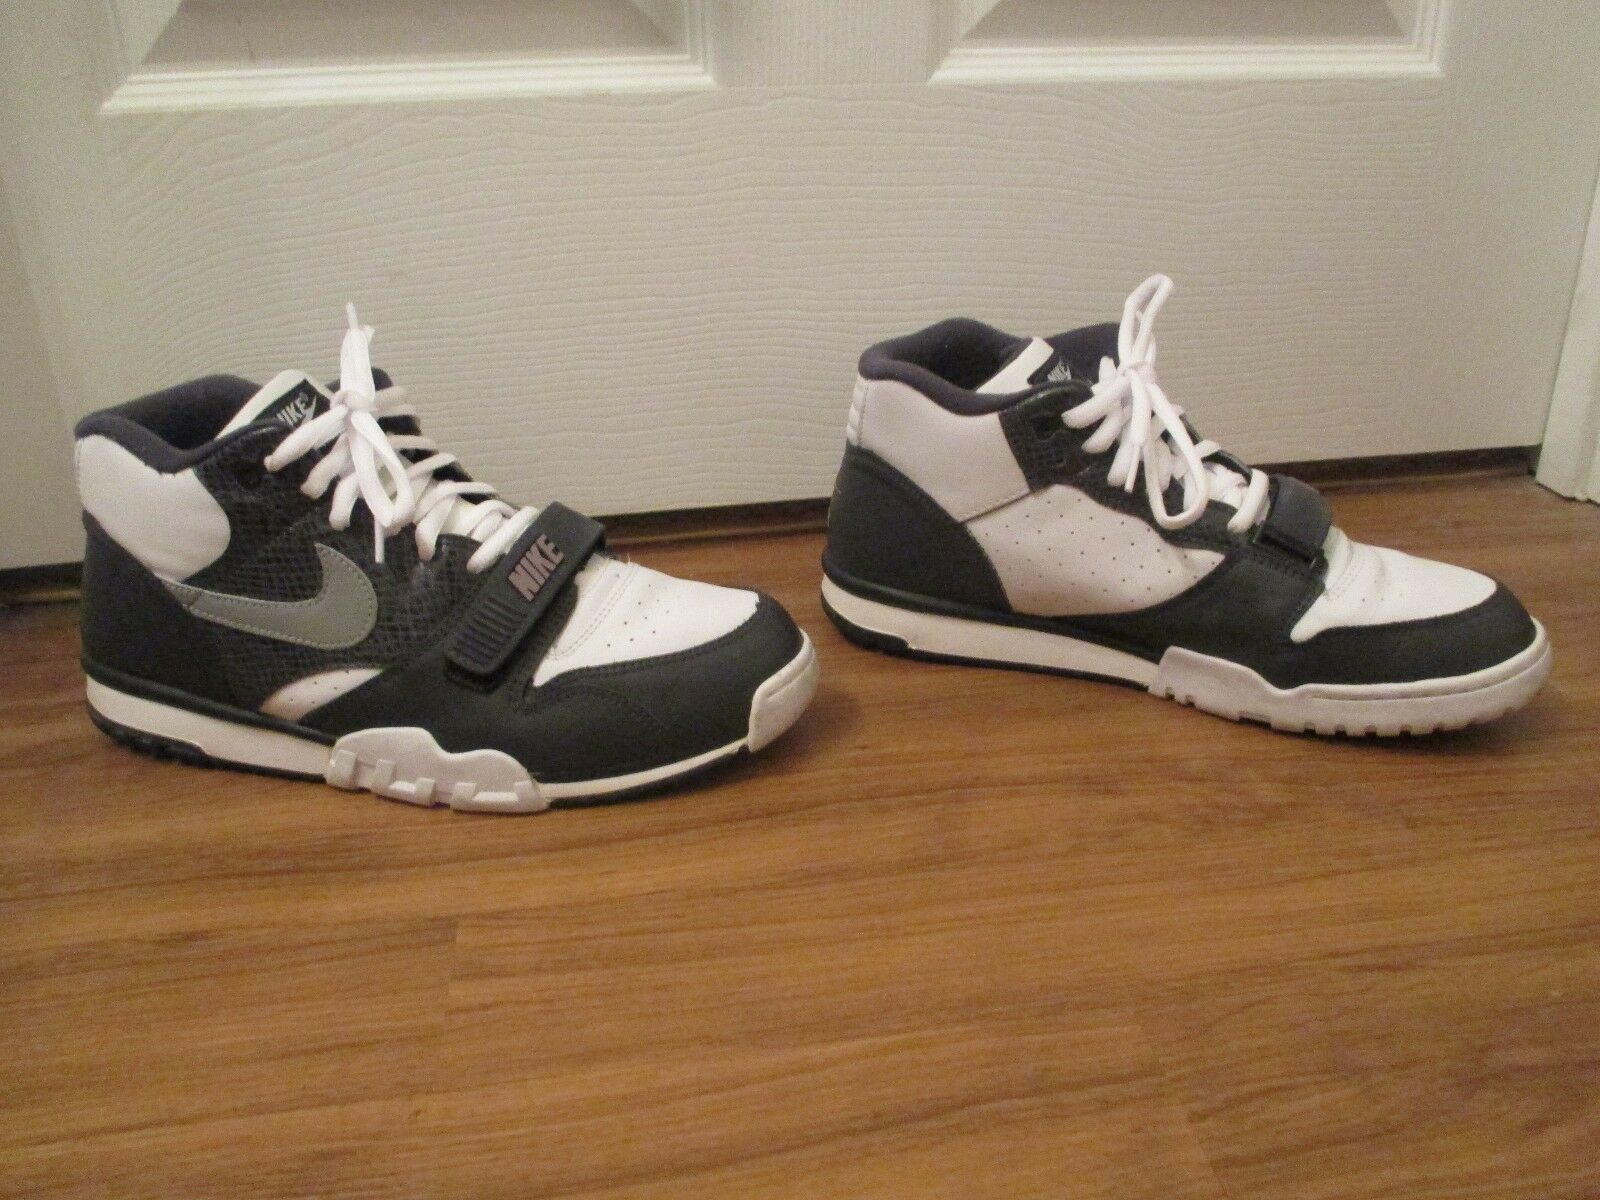 Classic 2003 Used Worn 1 Size 12 Nike Trainer 1 Worn Python Shoes White Gray Anthracite c48828